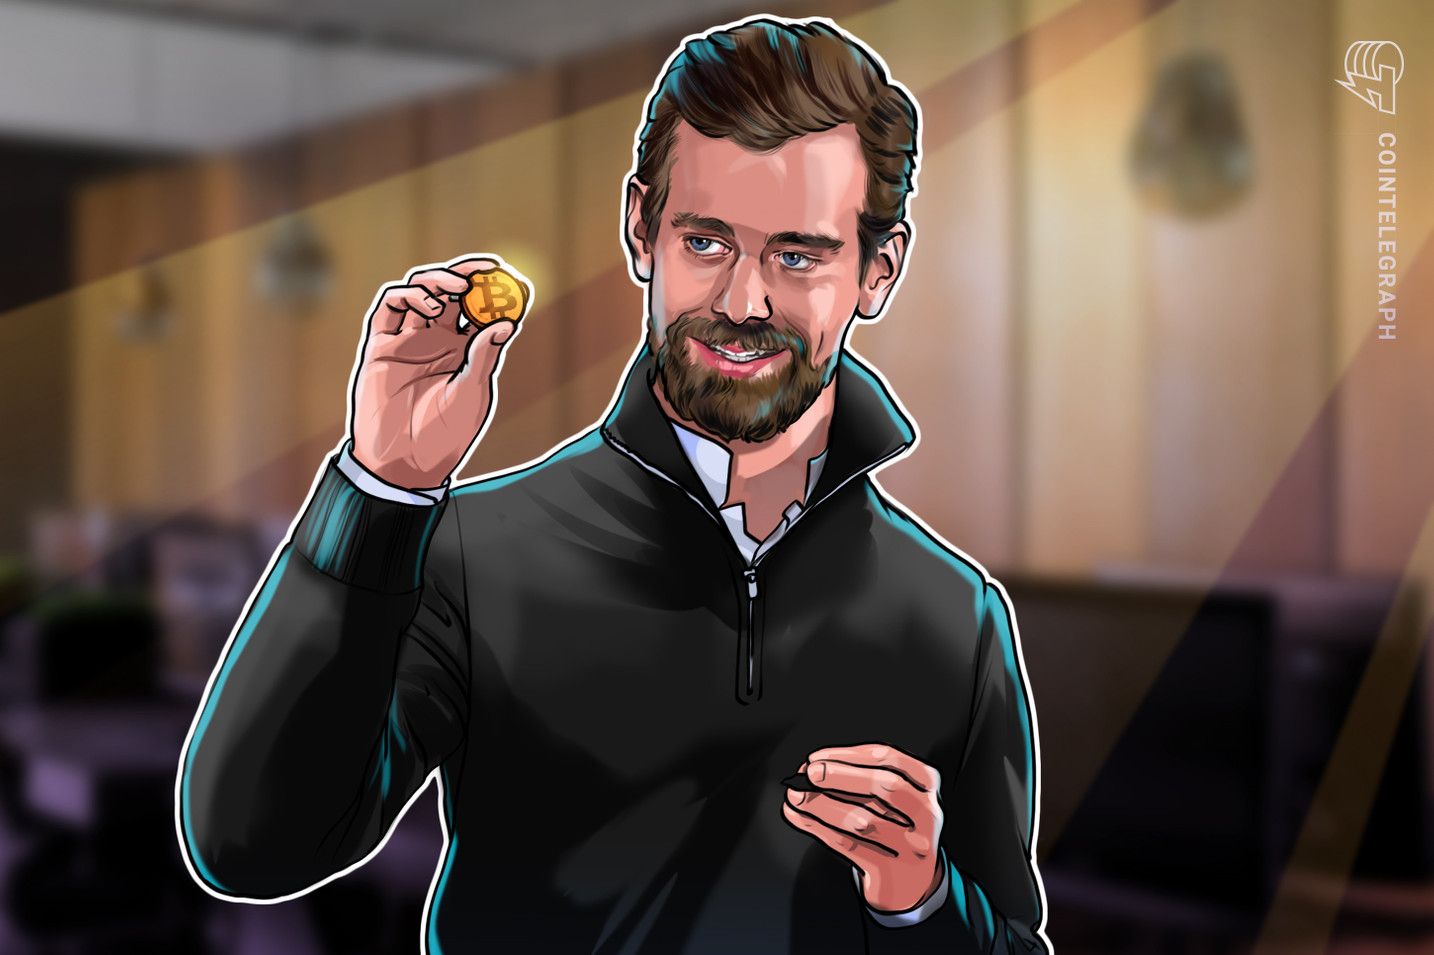 Twitter CEO Jack Dorsey has fired up a full Bitcoin node